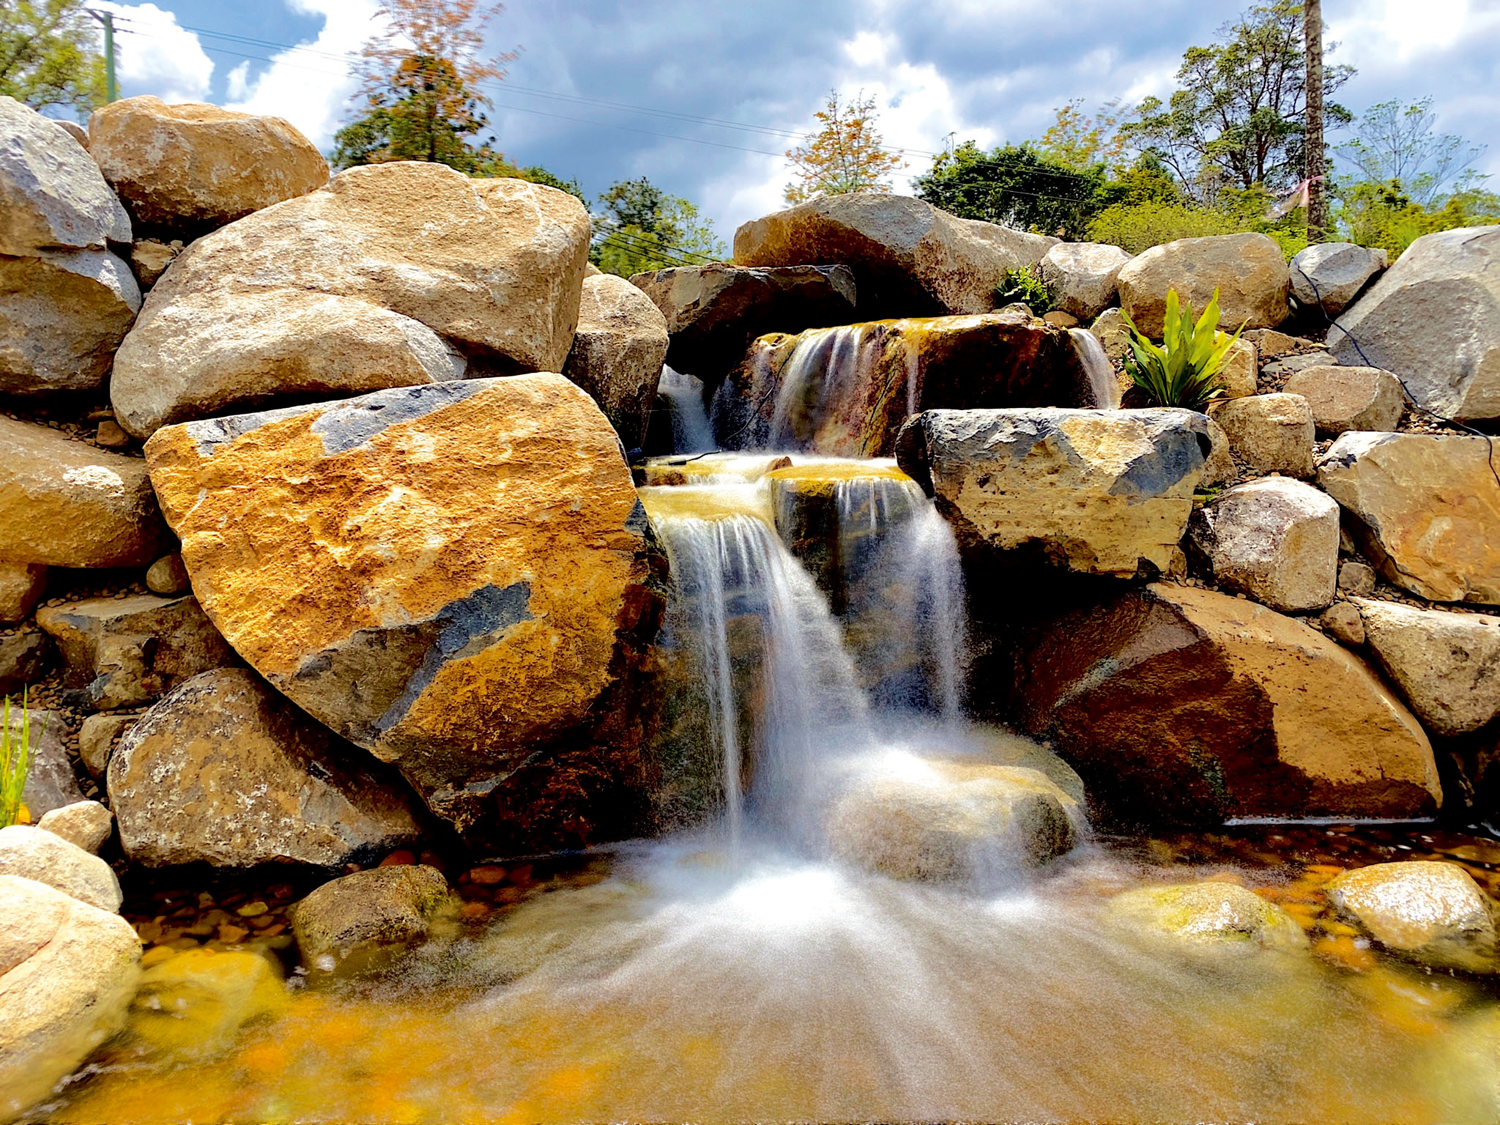 How to recreate a natural water feature in your garden